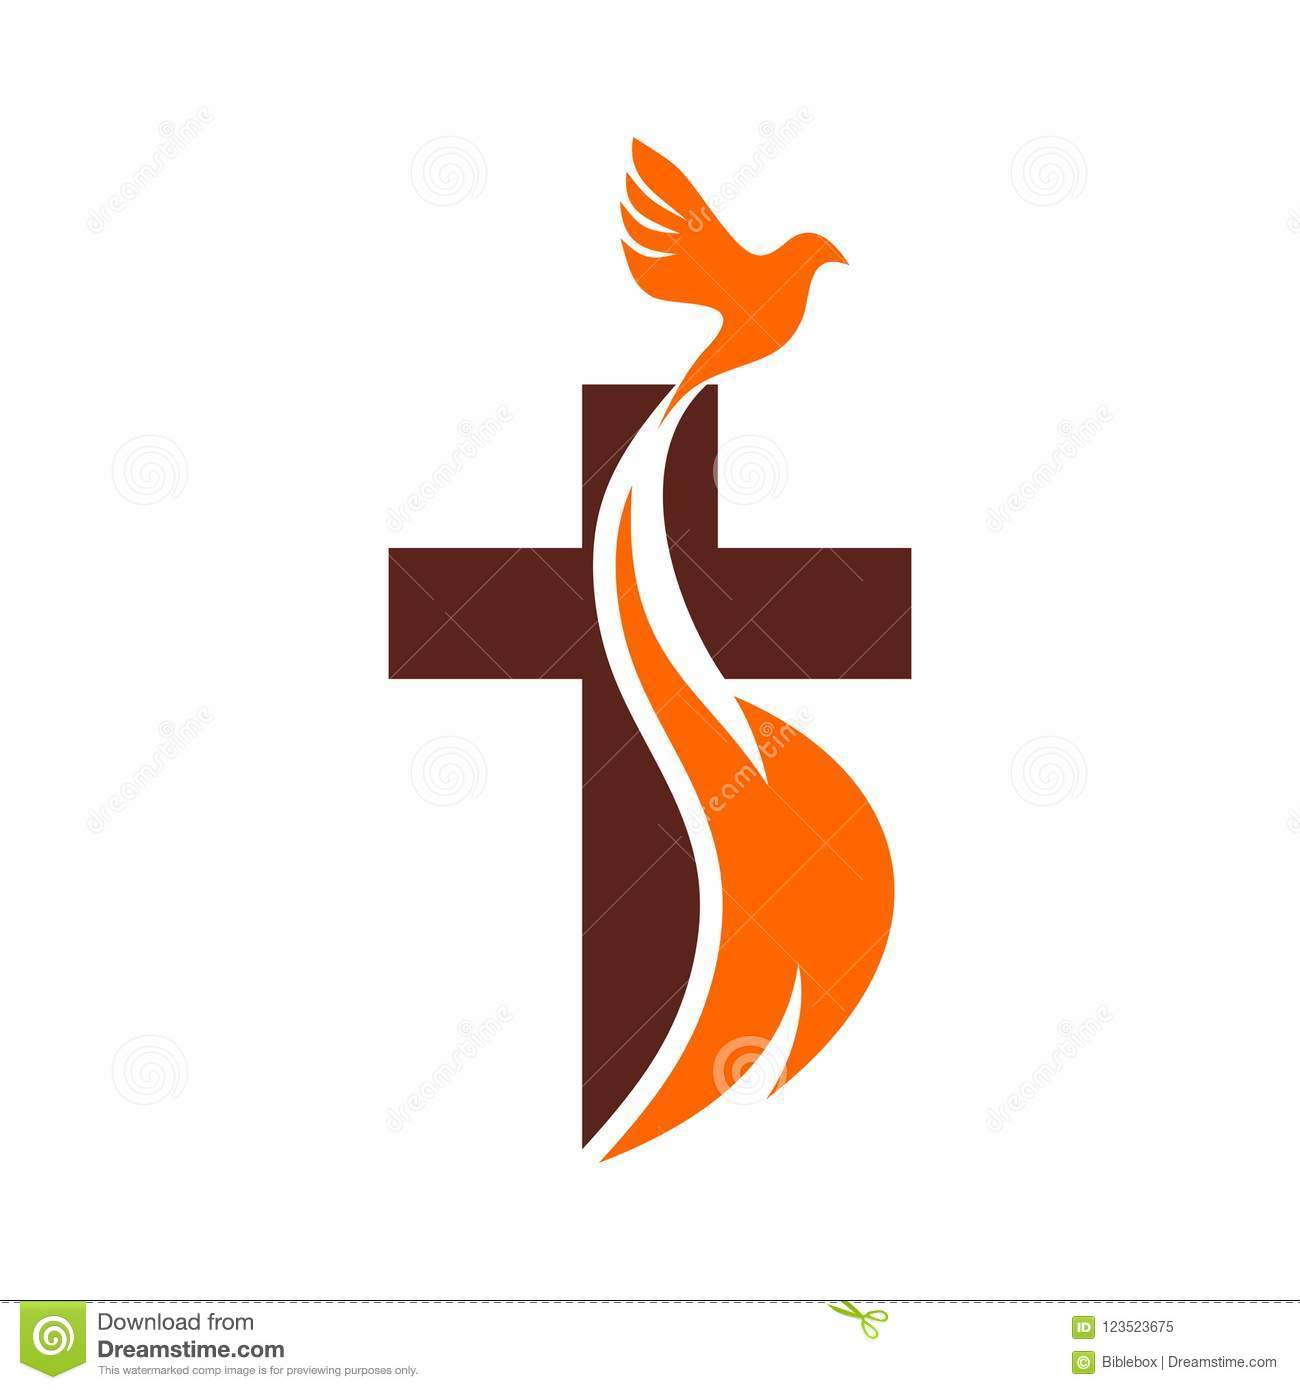 Church Logo Christian Symbols The Cross Of Jesus The Fire Of The